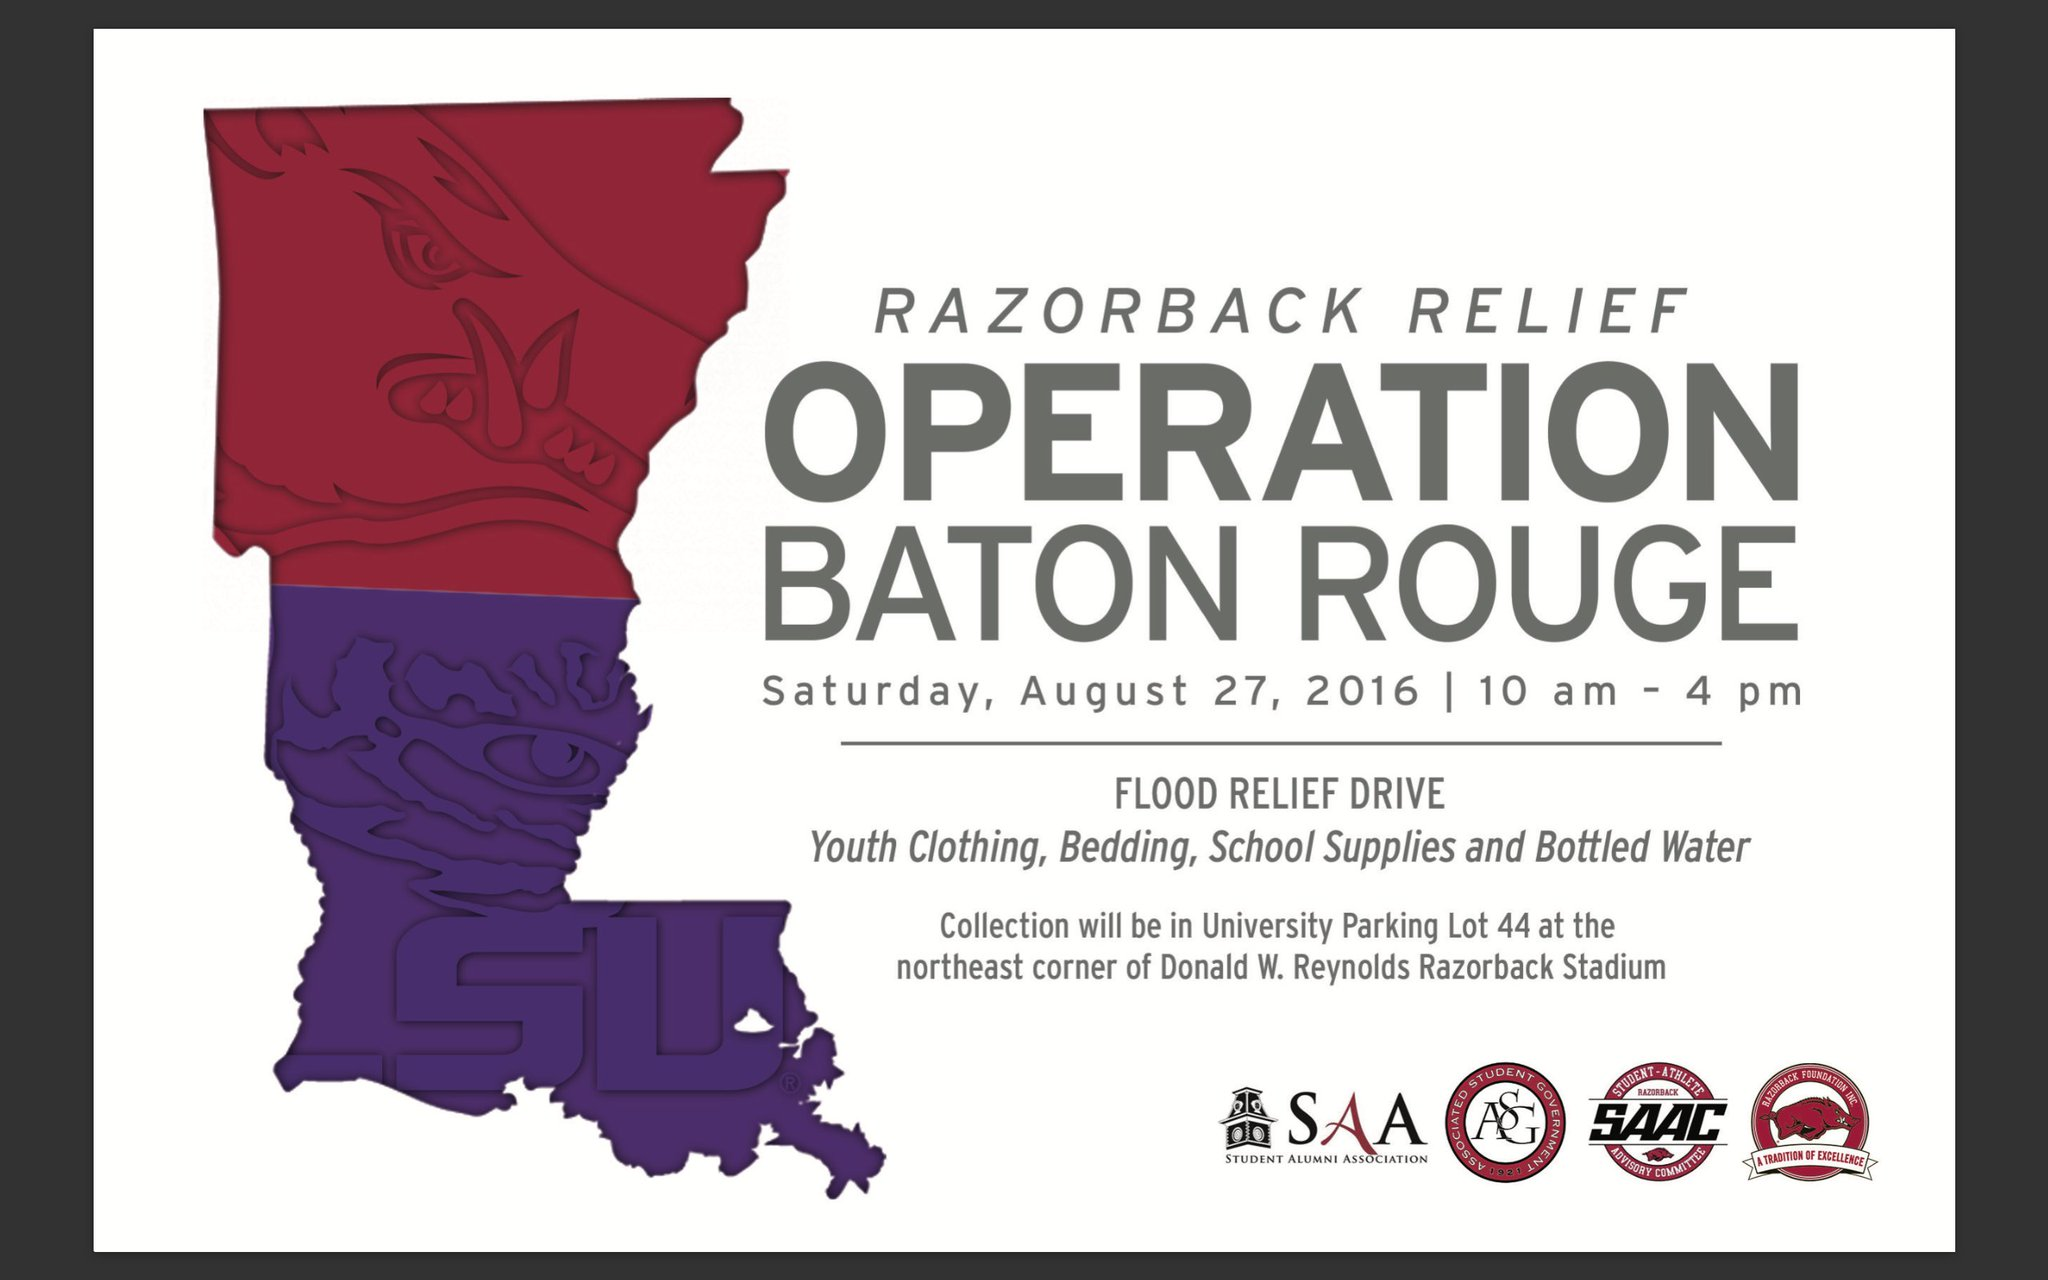 TODAY volunteers will be collecting donations for the victims of the Baton Rouge floods #RazorbackRelief https://t.co/jVg5nATzEh